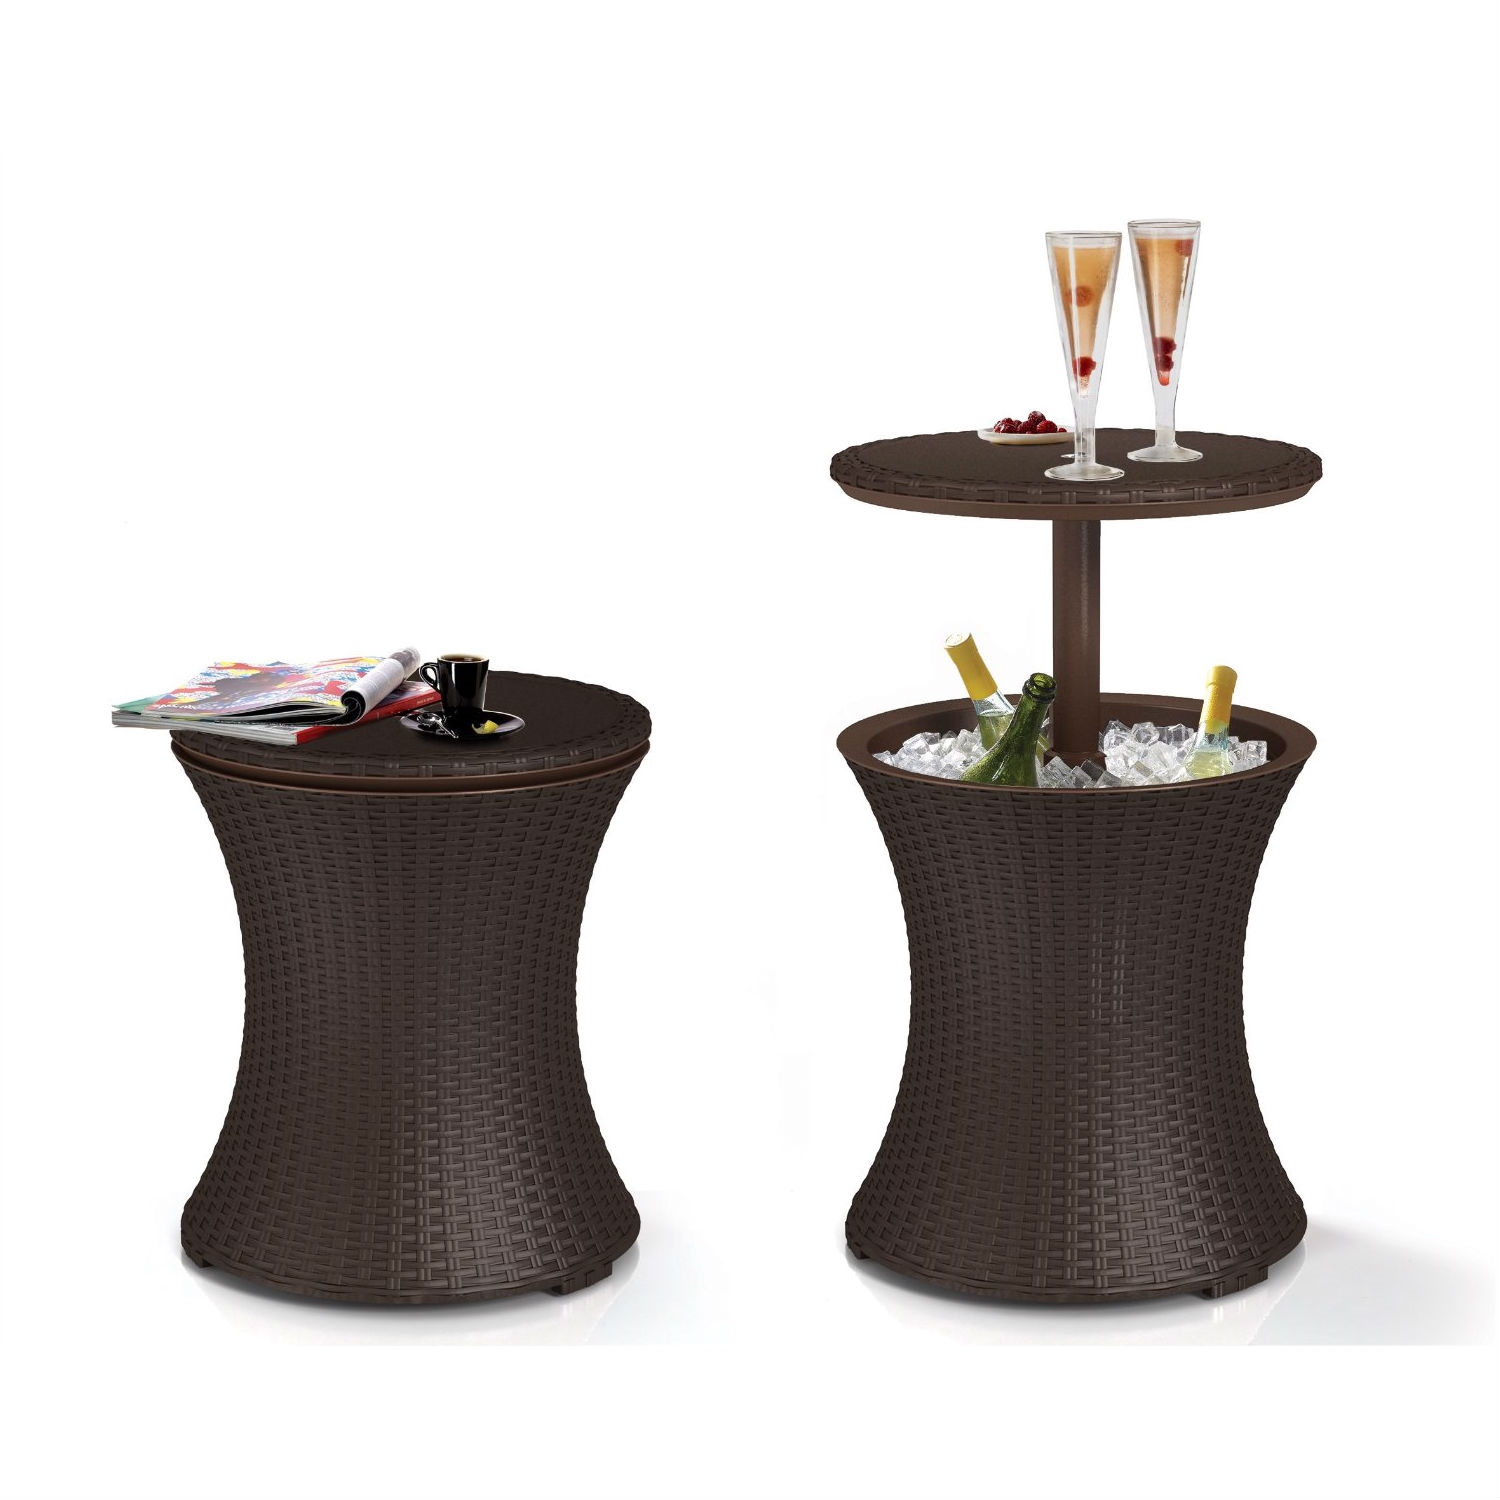 Completely new Outdoor Patio Pool Cocktail Table Cooler Bar in Brown Wicker Resin  ZR73